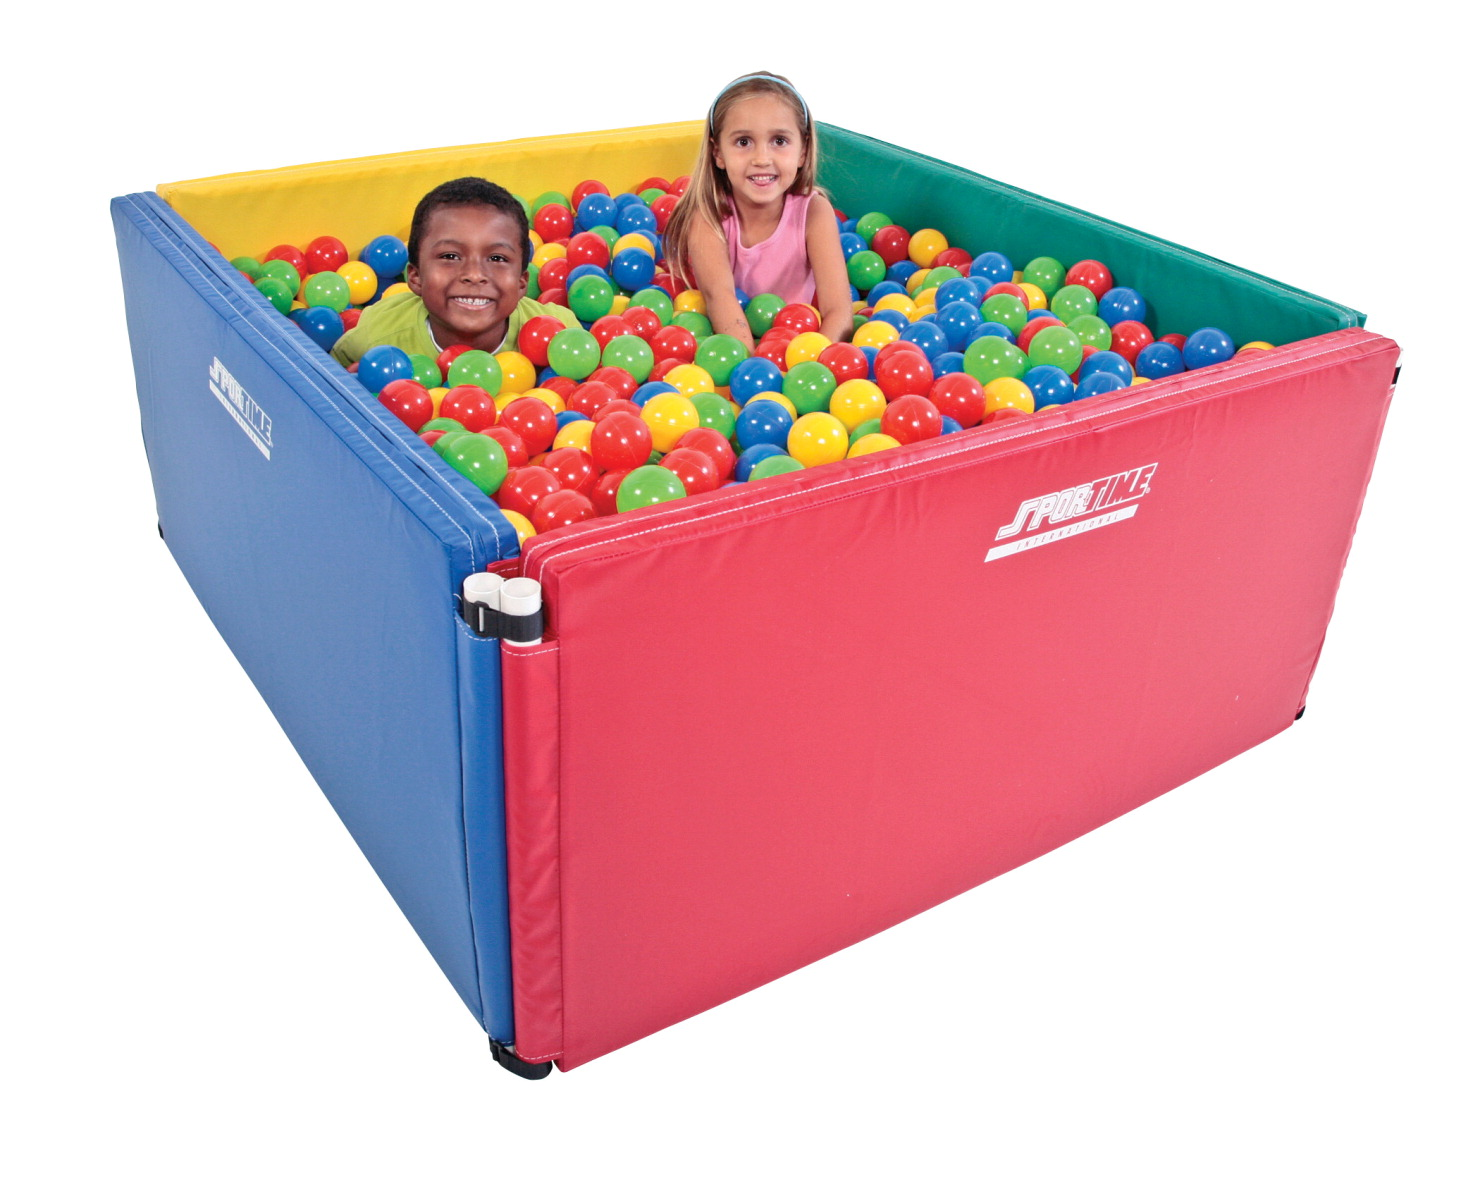 Sportime Expandable Economy Square Ball Pit, Includes 1500 Balls, Multicolors